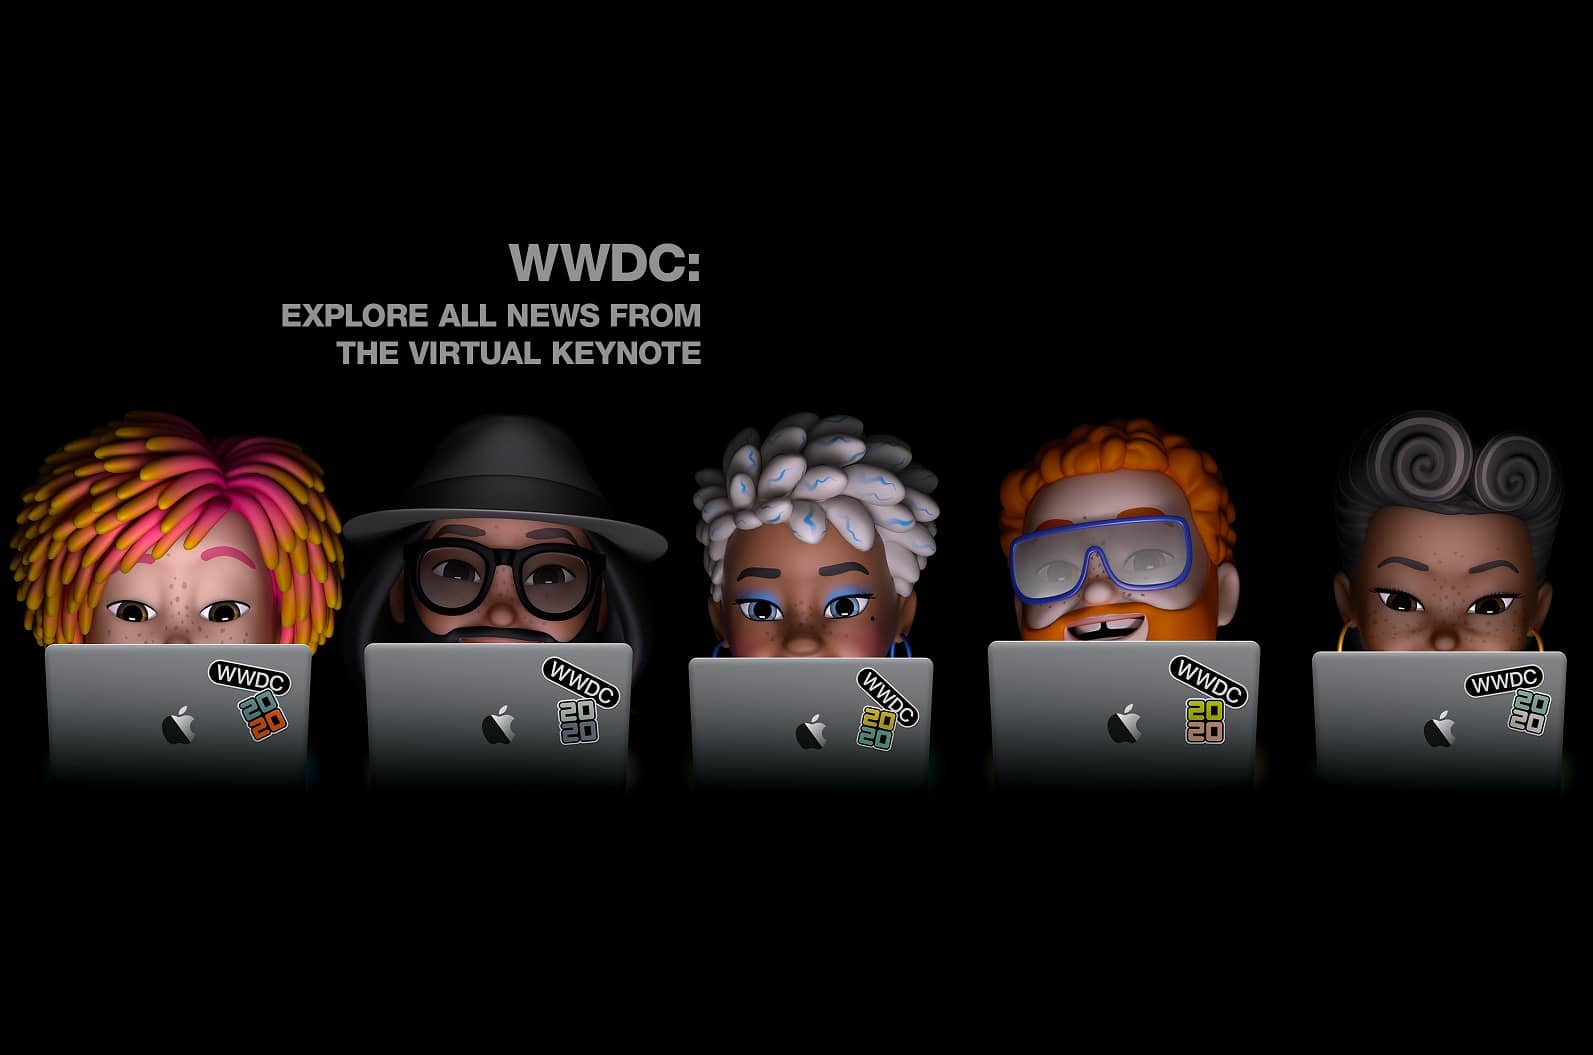 WWDC: EXPLORE ALL NEWS FROM THE VIRTUAL KEYNOTE